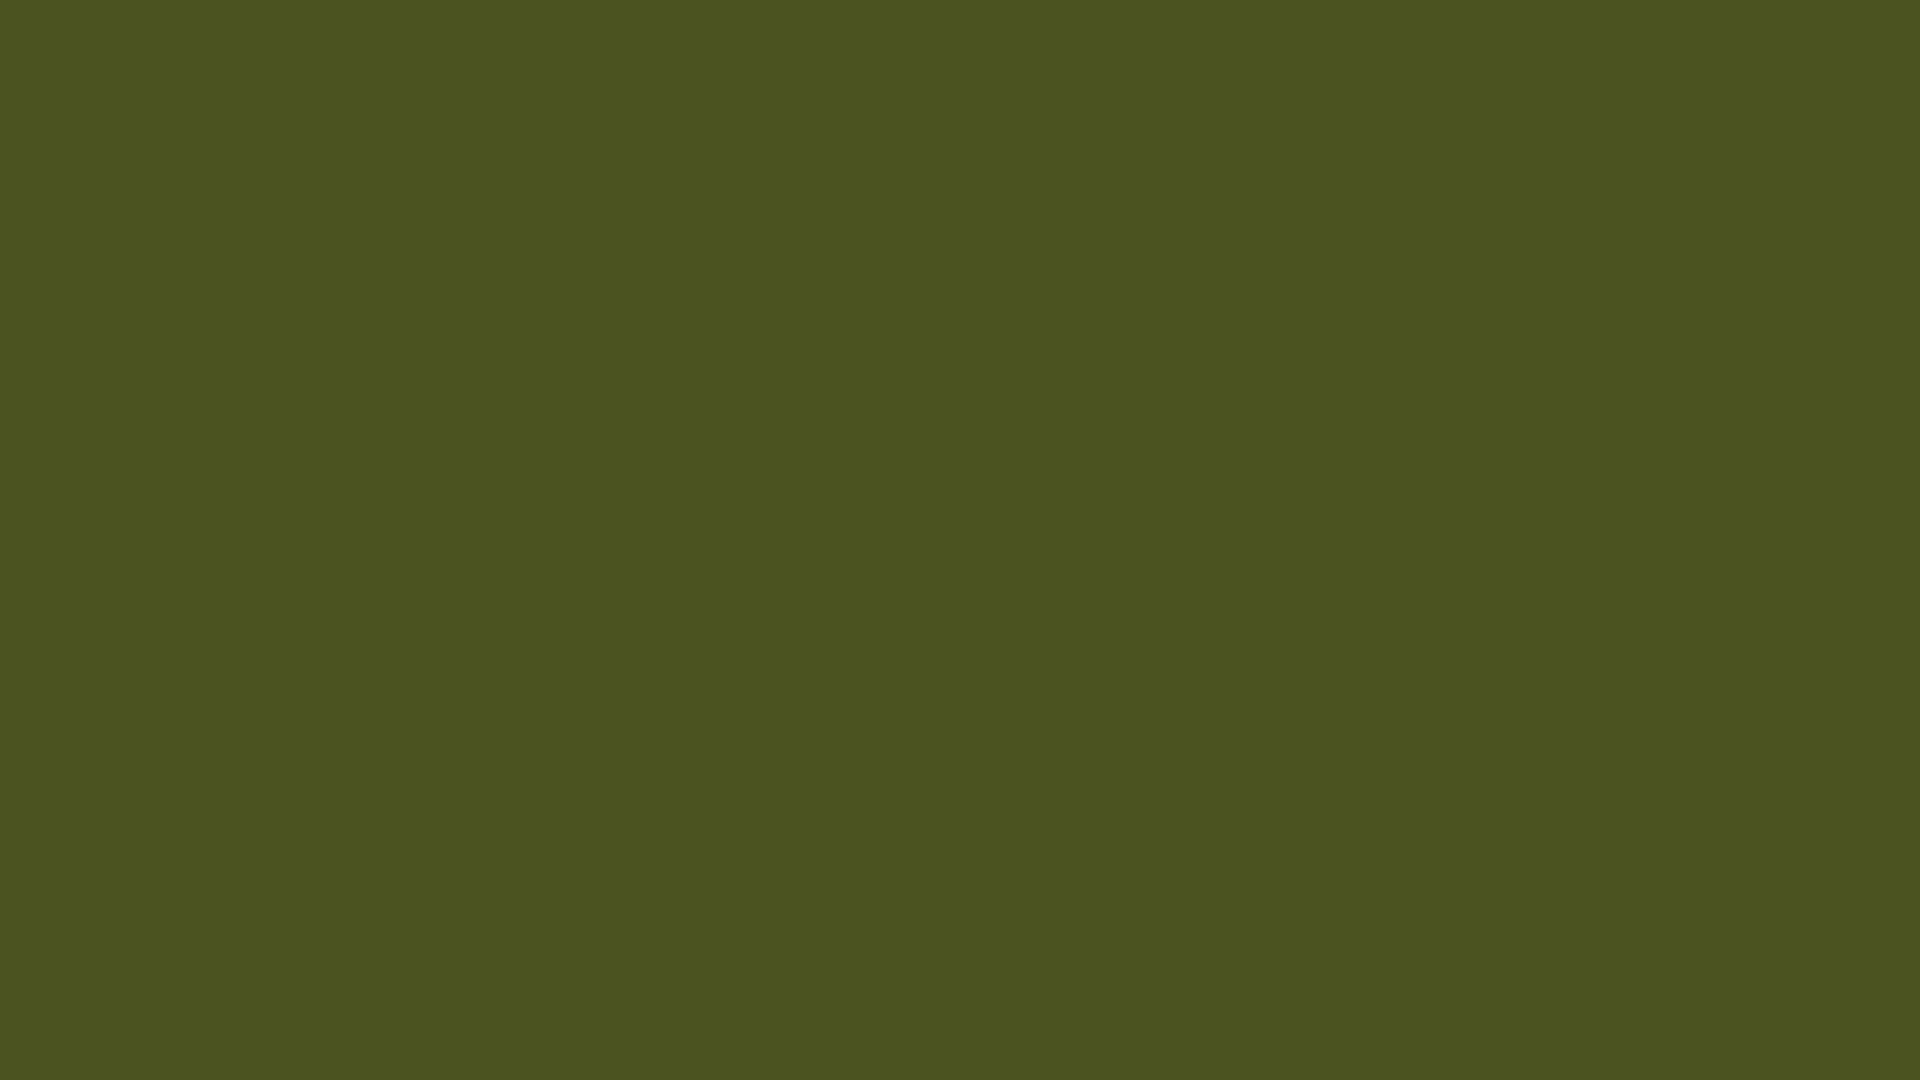 1920x1080 Army Green Solid Color Background